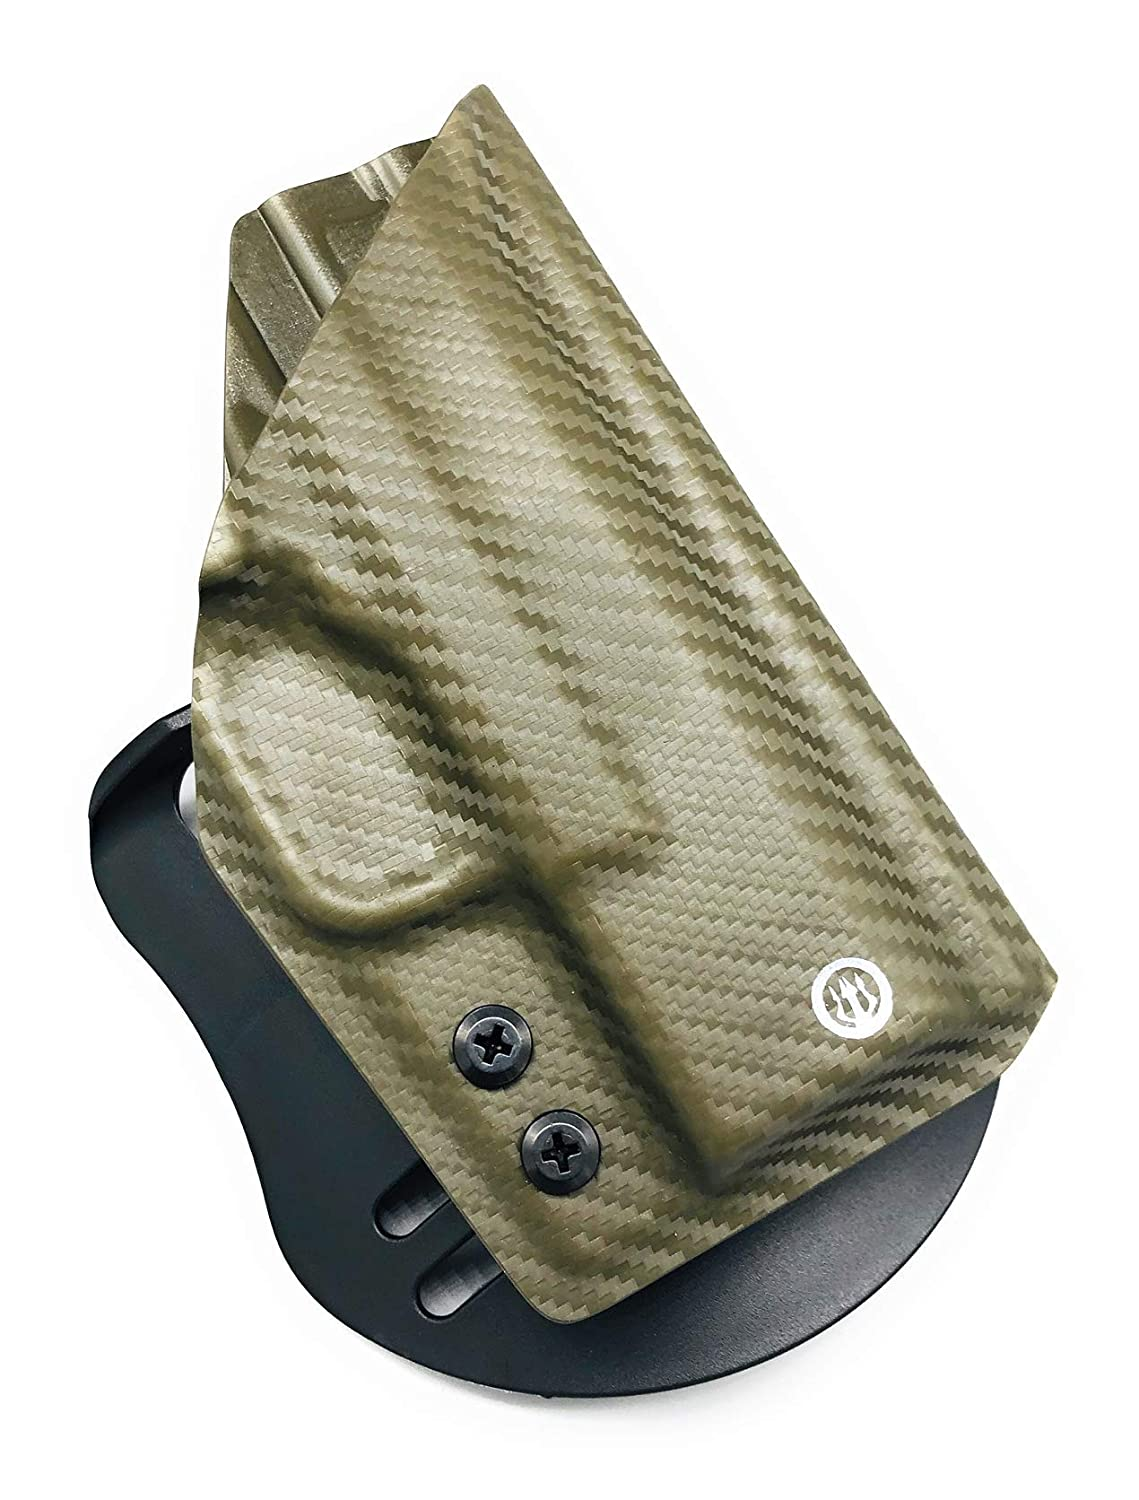 Neptune Concealment Branded goods OWB Kydex Holster Genuine Free Shipping for C - 75D PCR CZ Compact